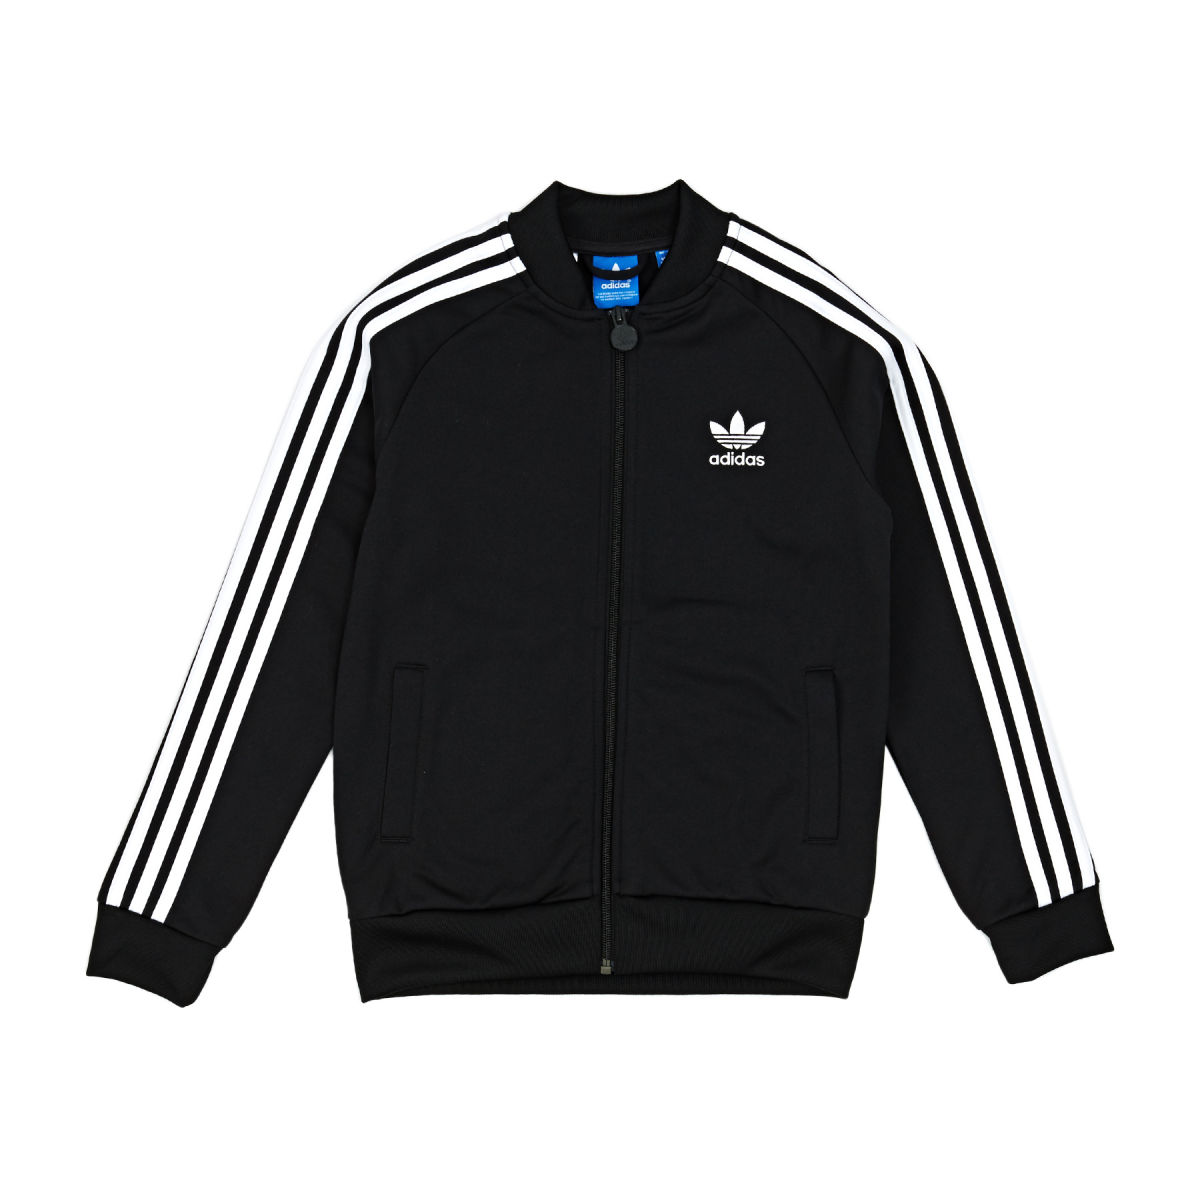 Buy adidas originals jacket black   OFF53% Discounted c8d359b9d